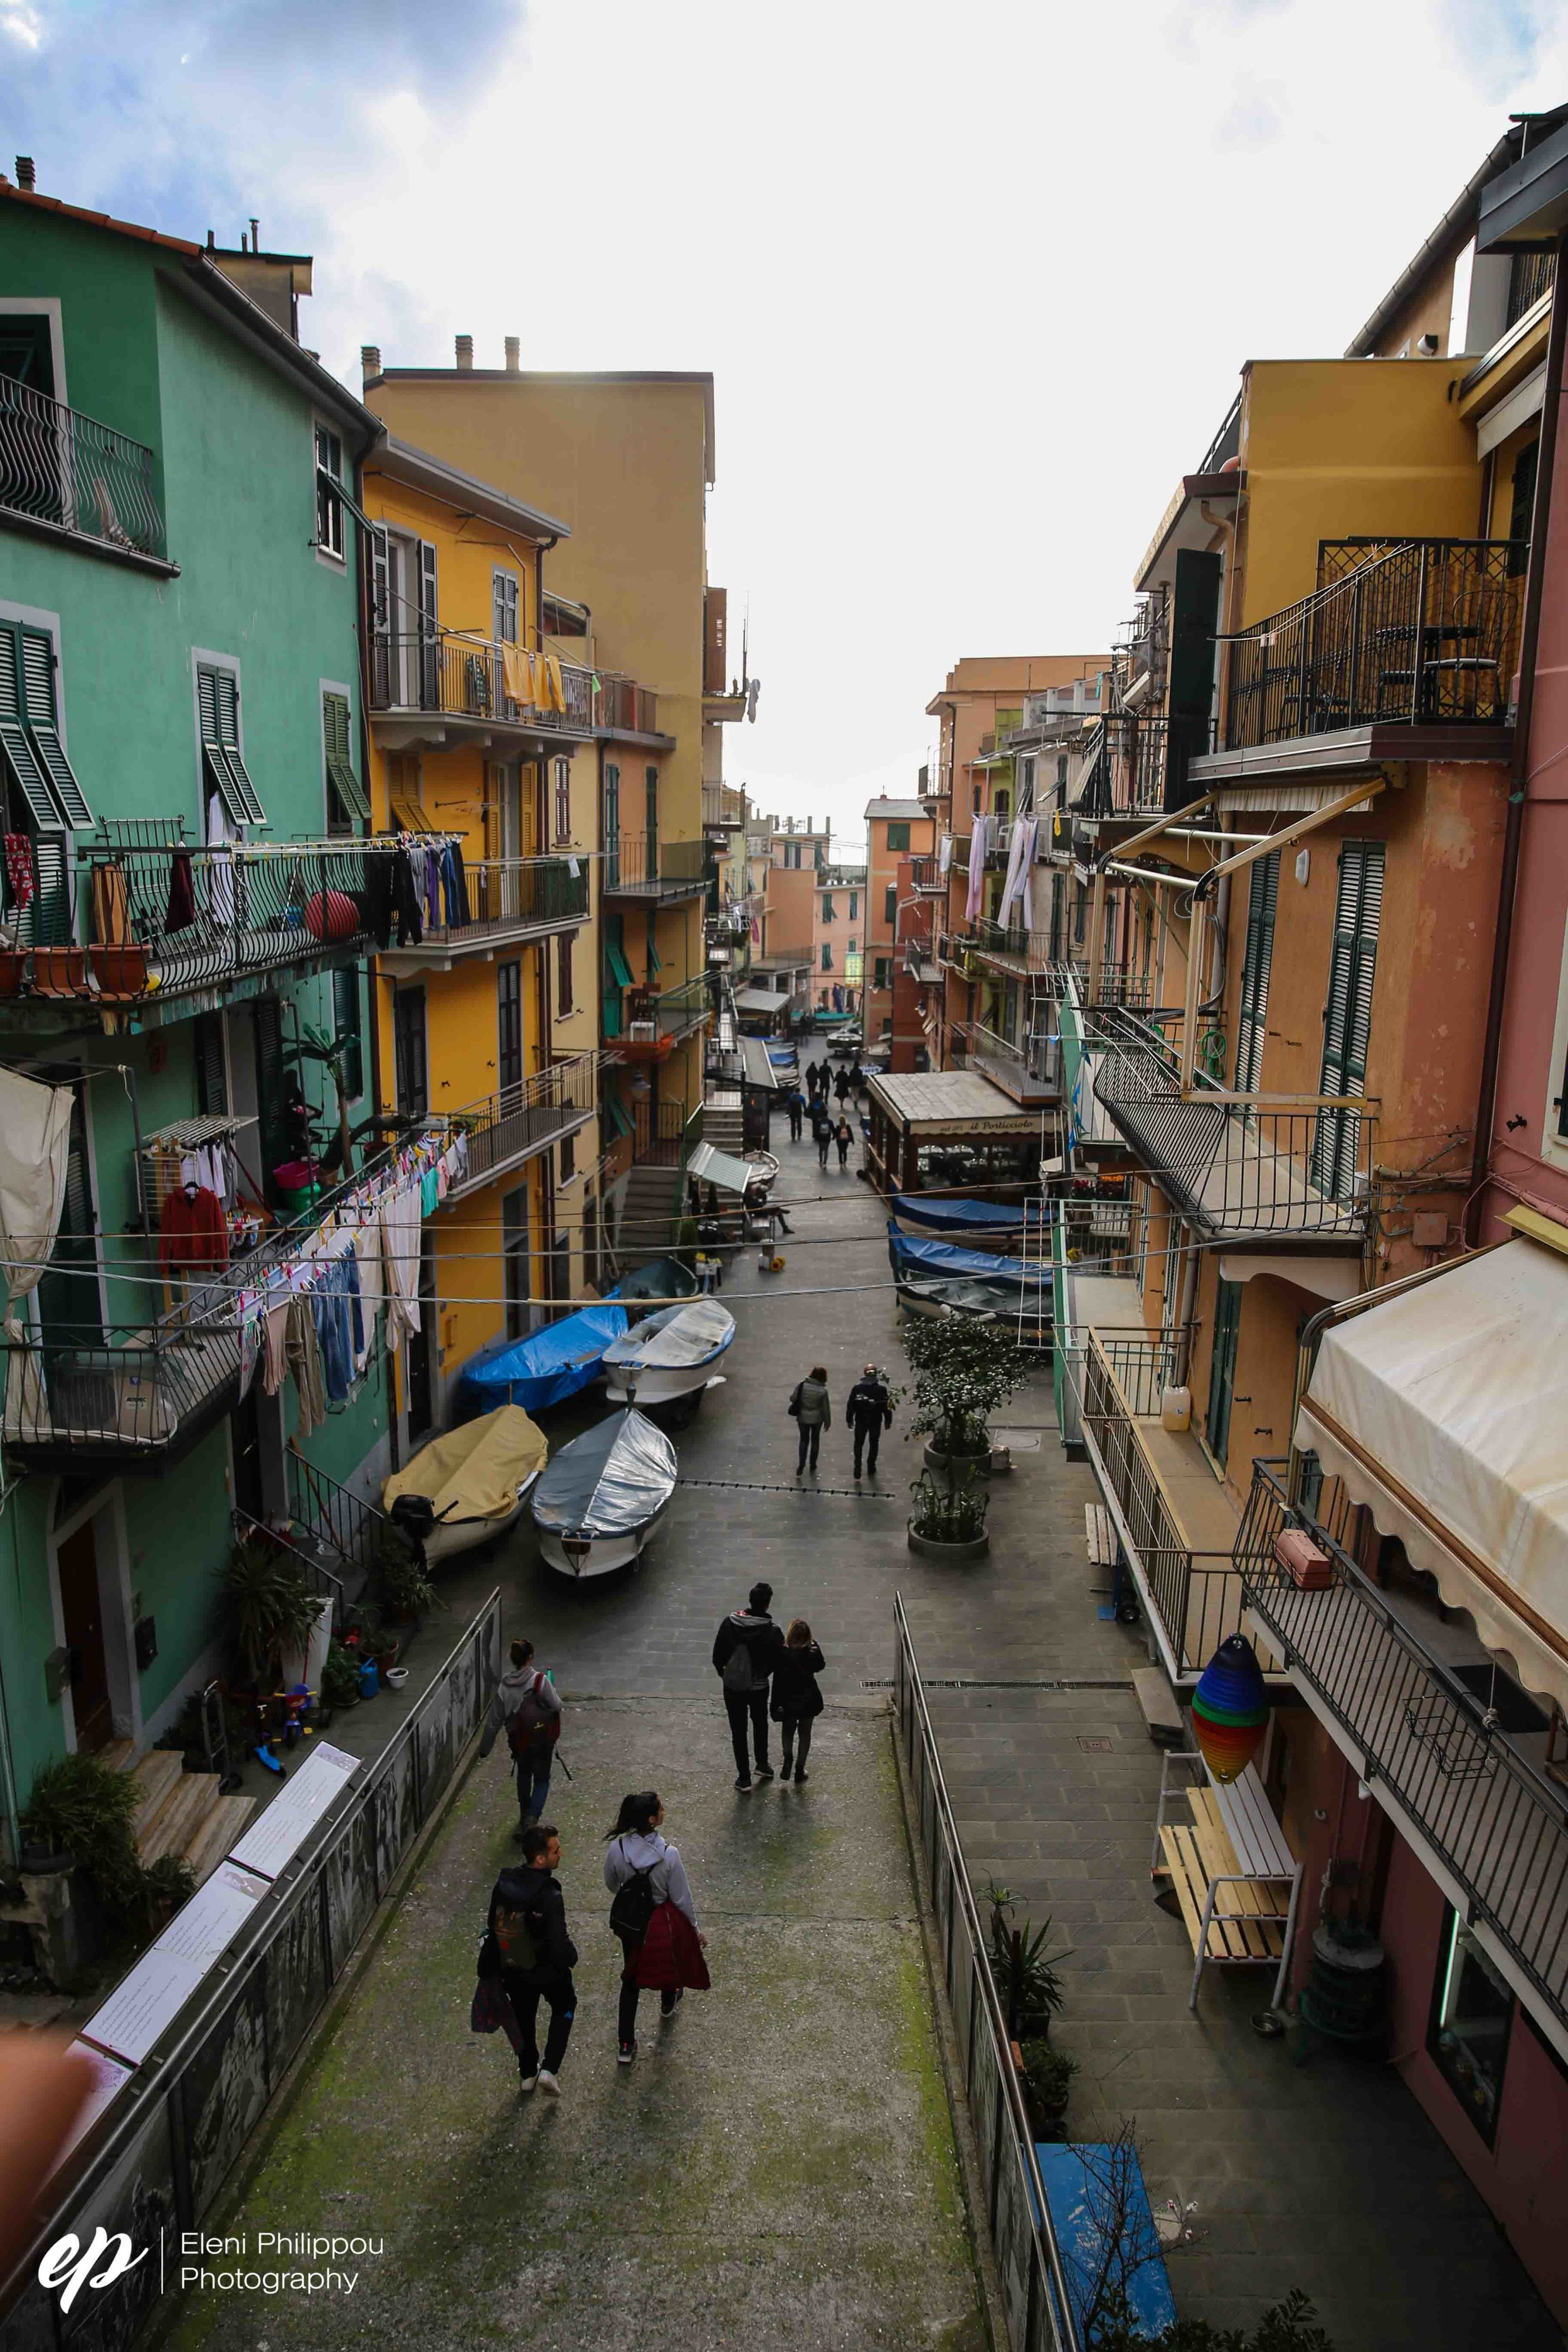 Reaching the Insta-famous Cinque Terre